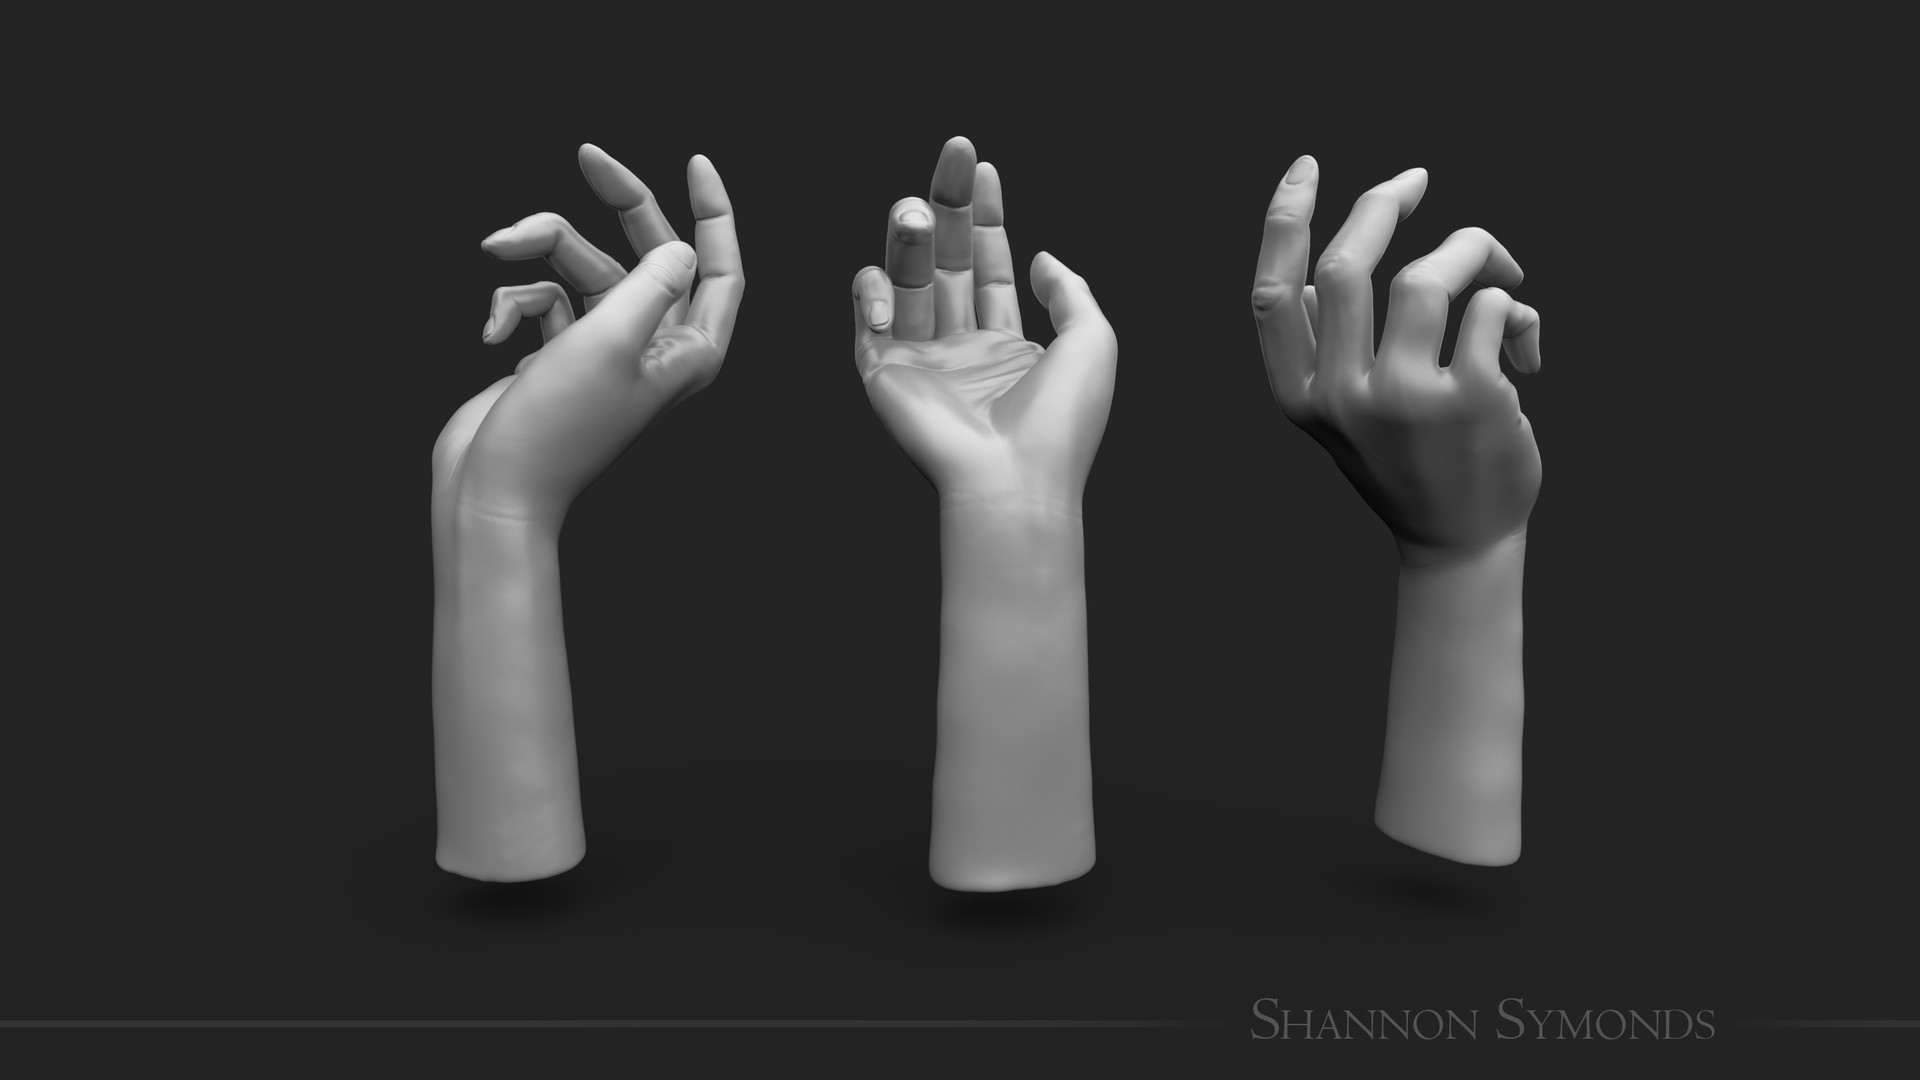 Shannon symonds relaxed hand